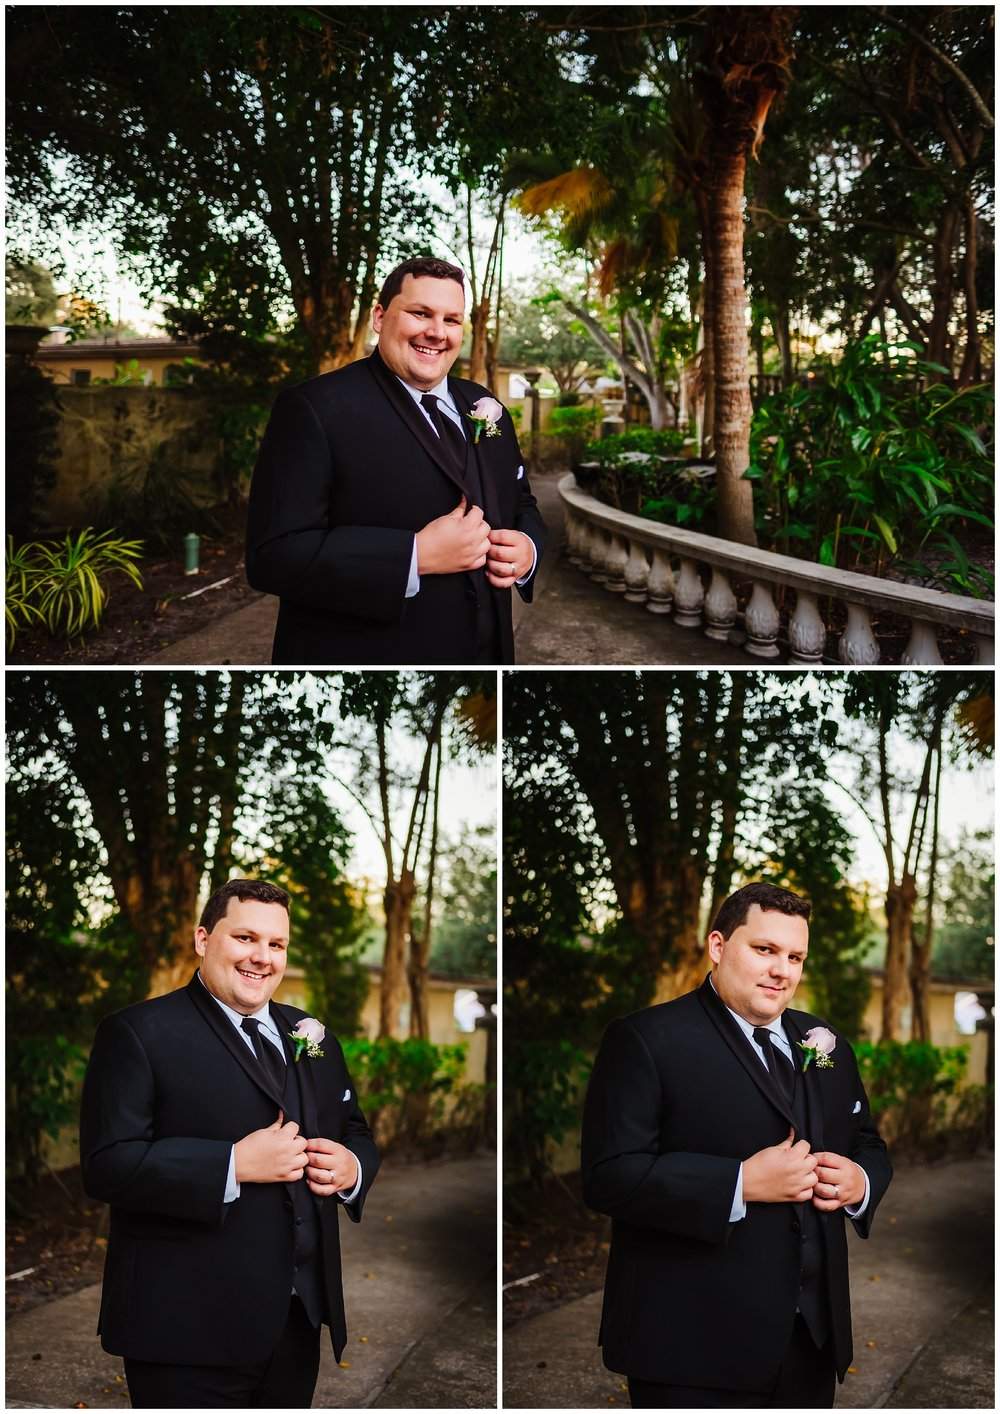 tampa-wedding-photographer-kapok-special-events-center-hayley-paige-gress-blush-gold-disney_0051.jpg